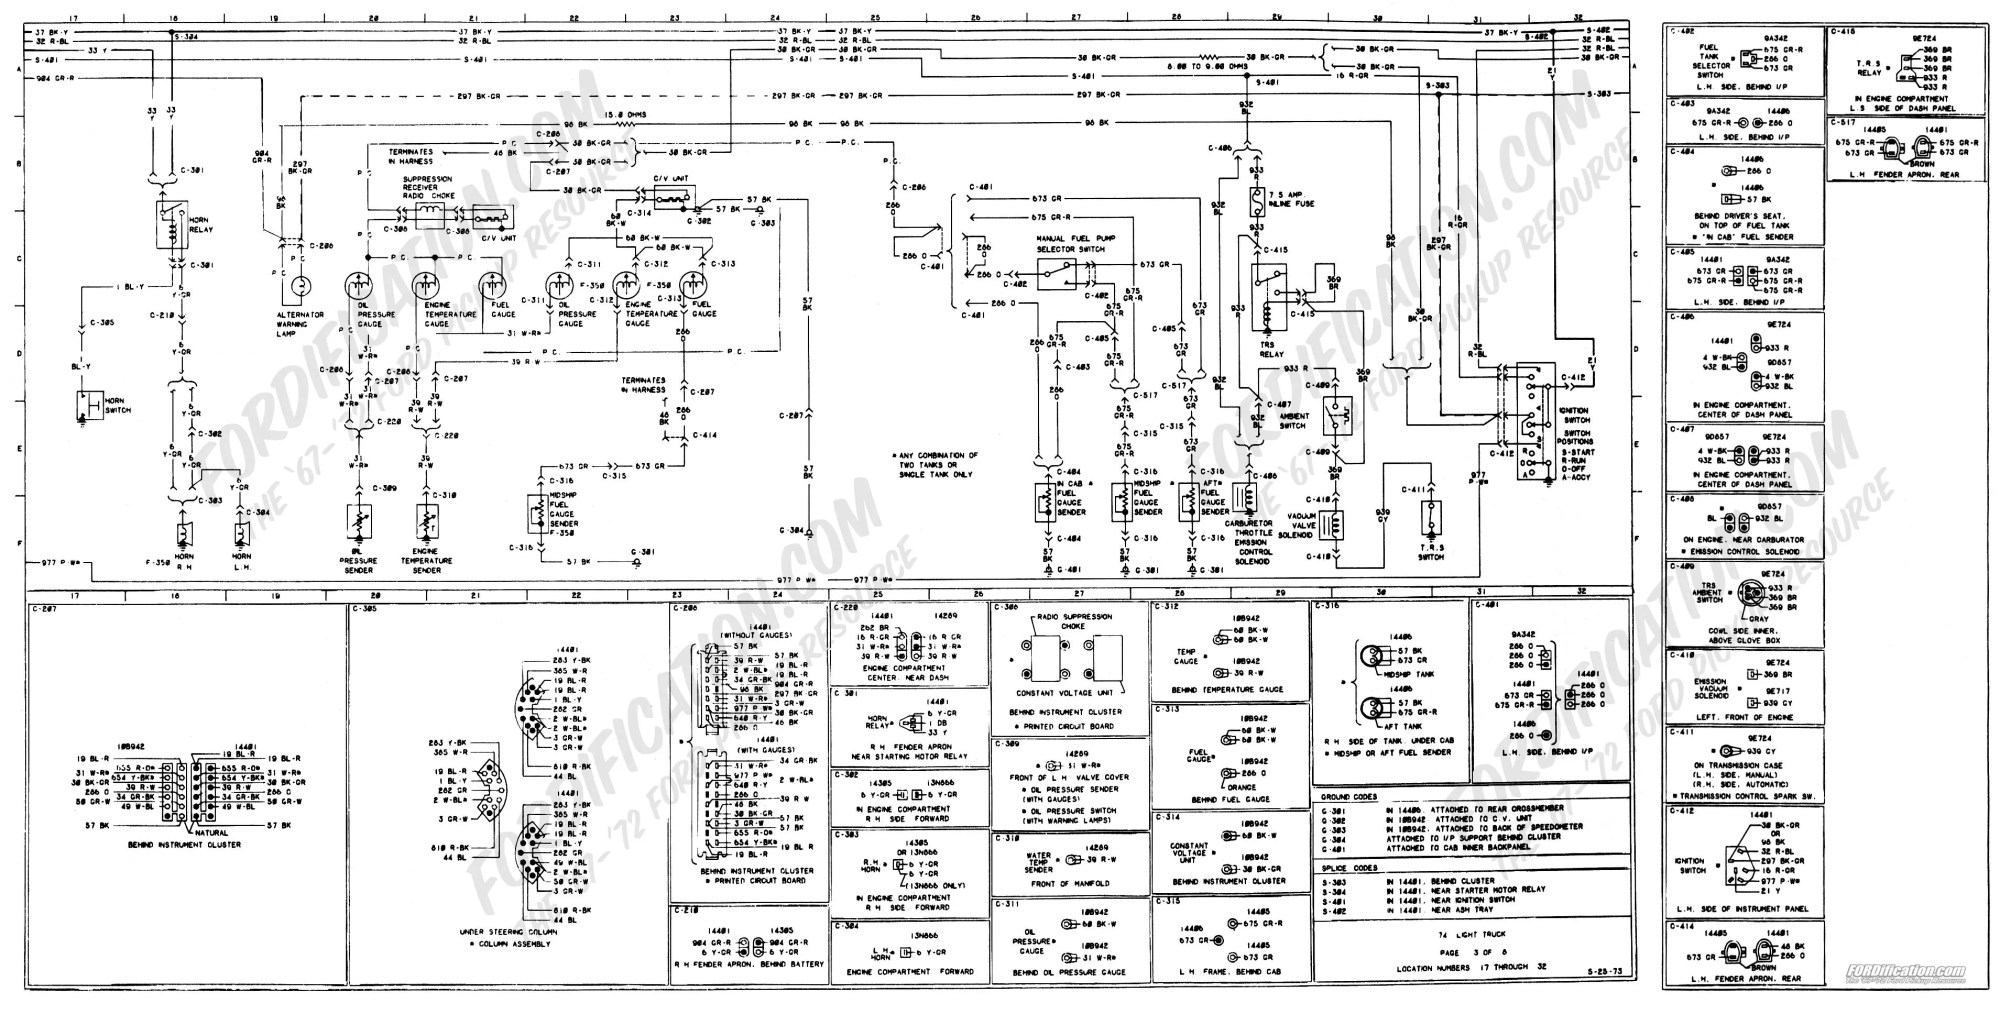 hight resolution of 1973 1979 ford truck wiring diagrams schematics fordification net 2001 ford mustang wiring diagram 1973 ford f250 fuel sender wiring diagram